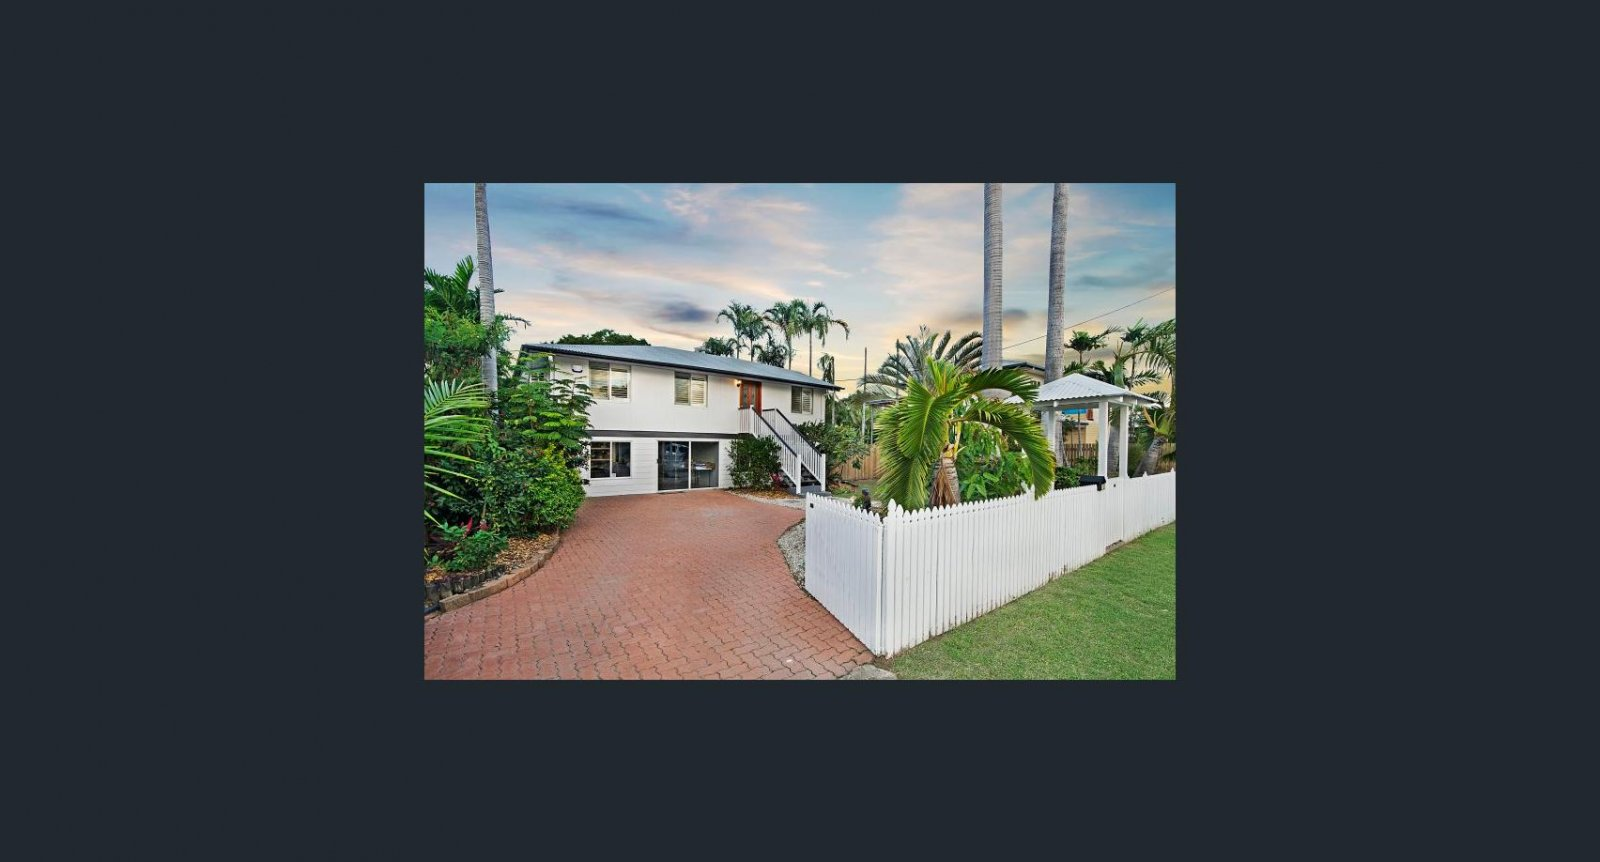 West End (Townsville) Third House Purchase in Australia